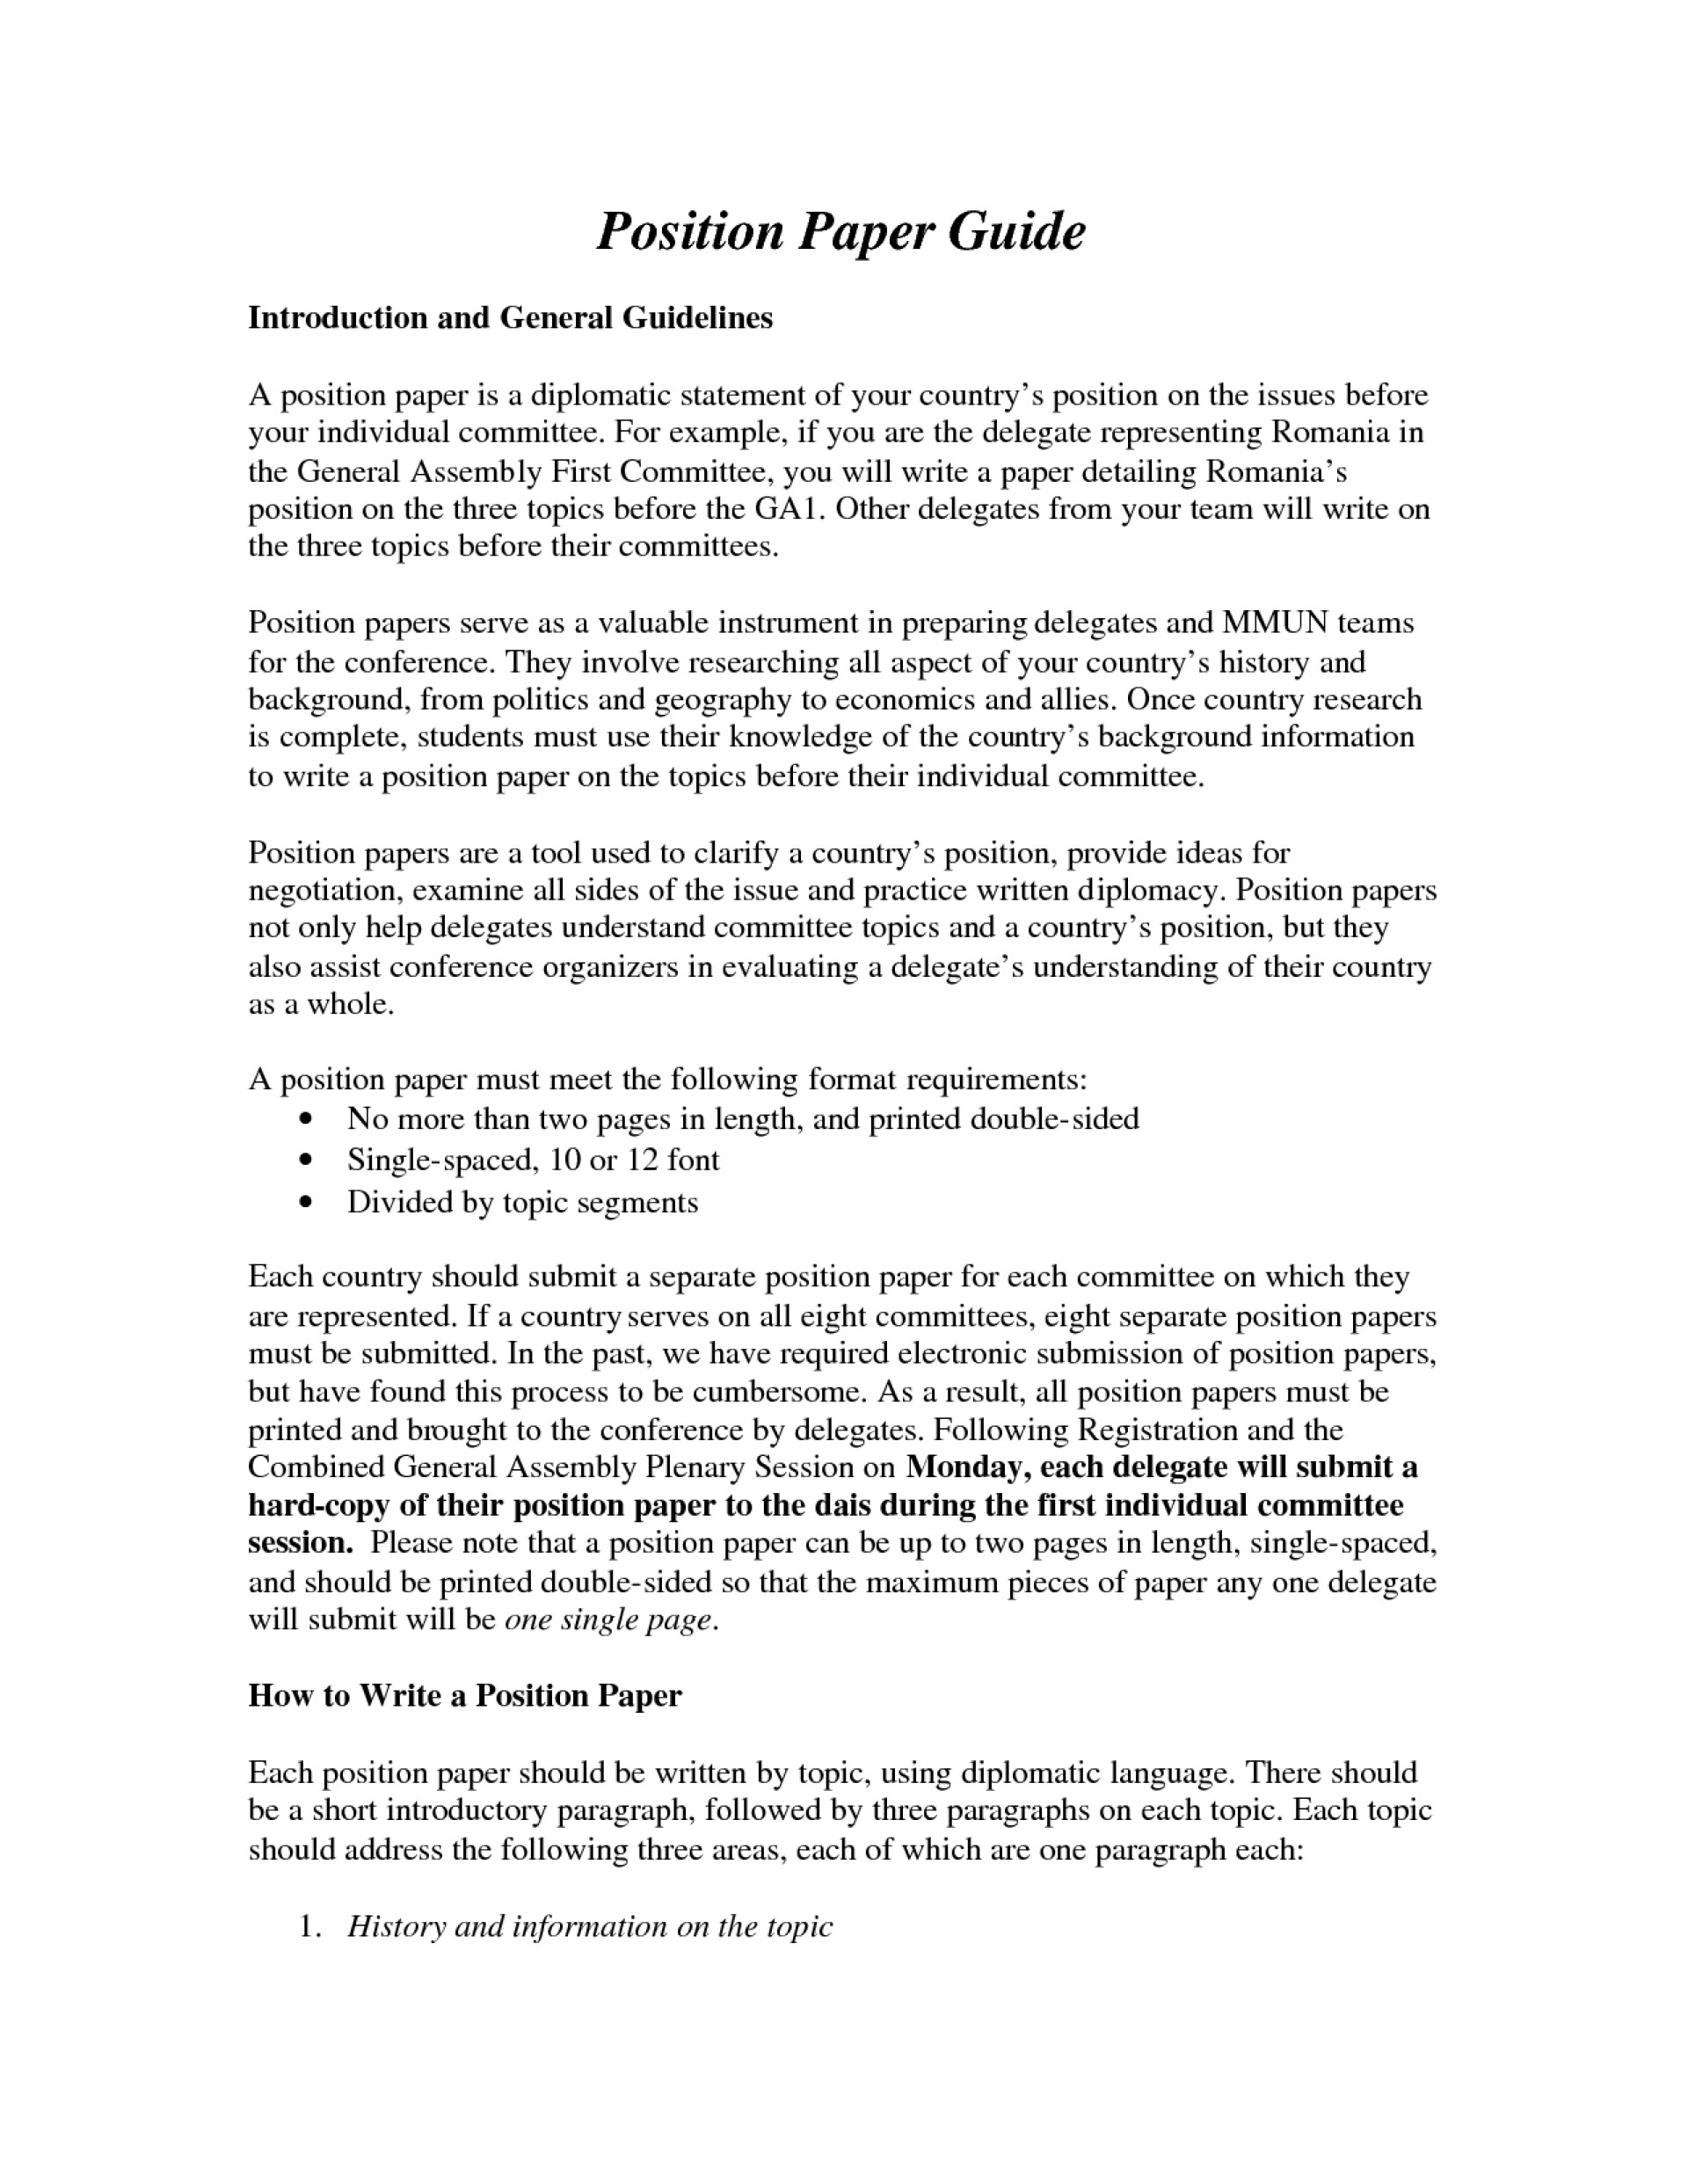 011 Research Papers Topics Paper Proposal Example 343593 Phenomenal For High School Students In Management 1920